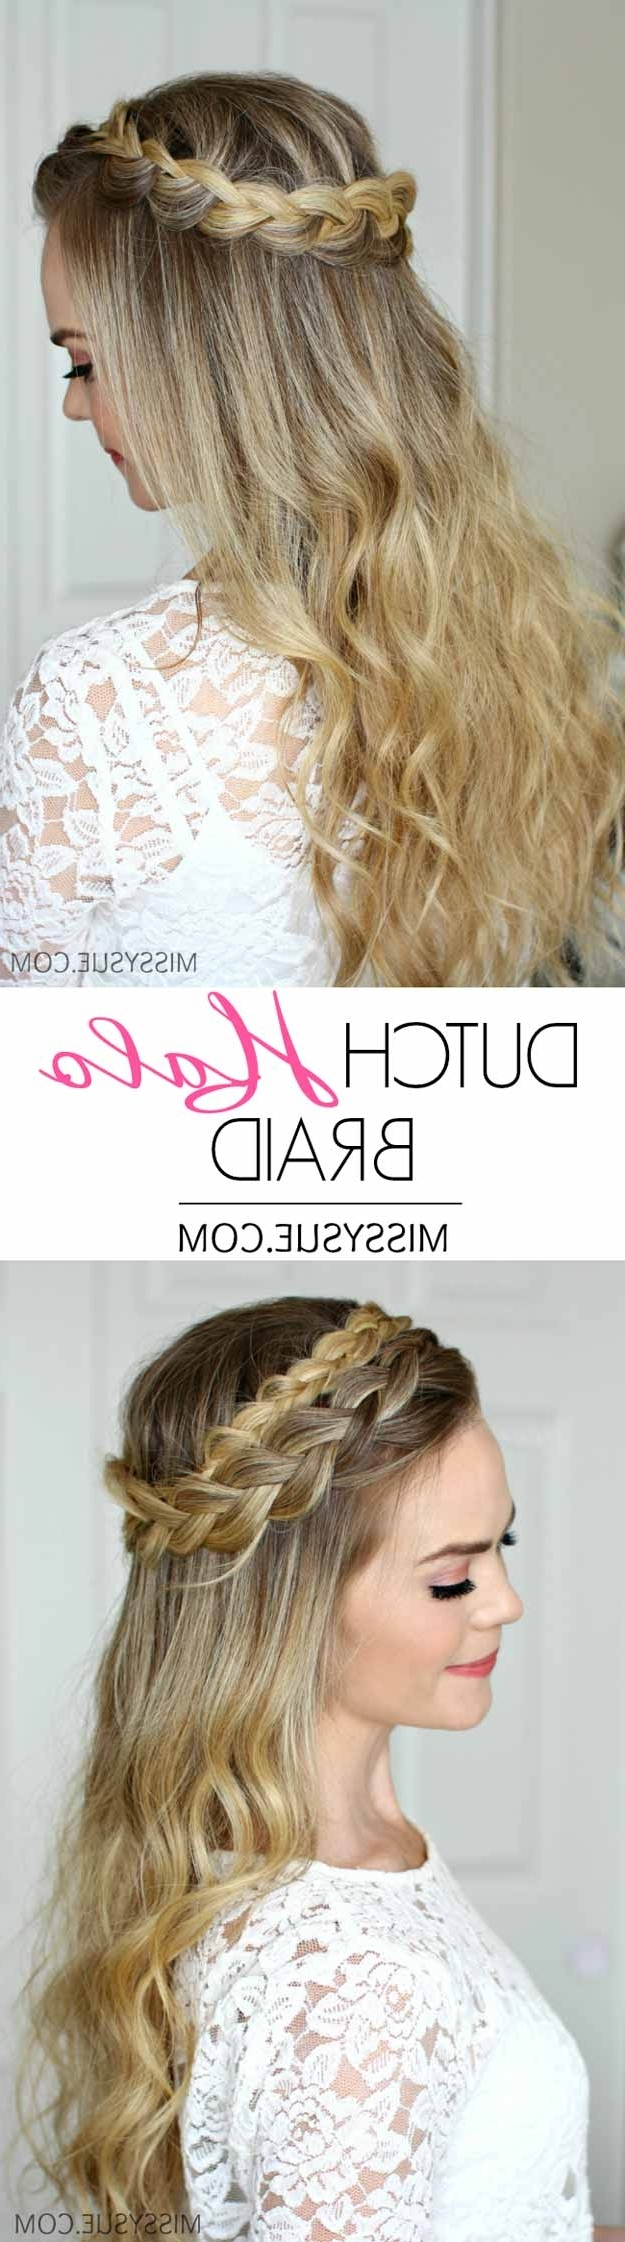 31 Wedding Hairstyles For Long Hair – The Goddess For Most Current Wedding Hairstyles For Blonde (View 3 of 15)